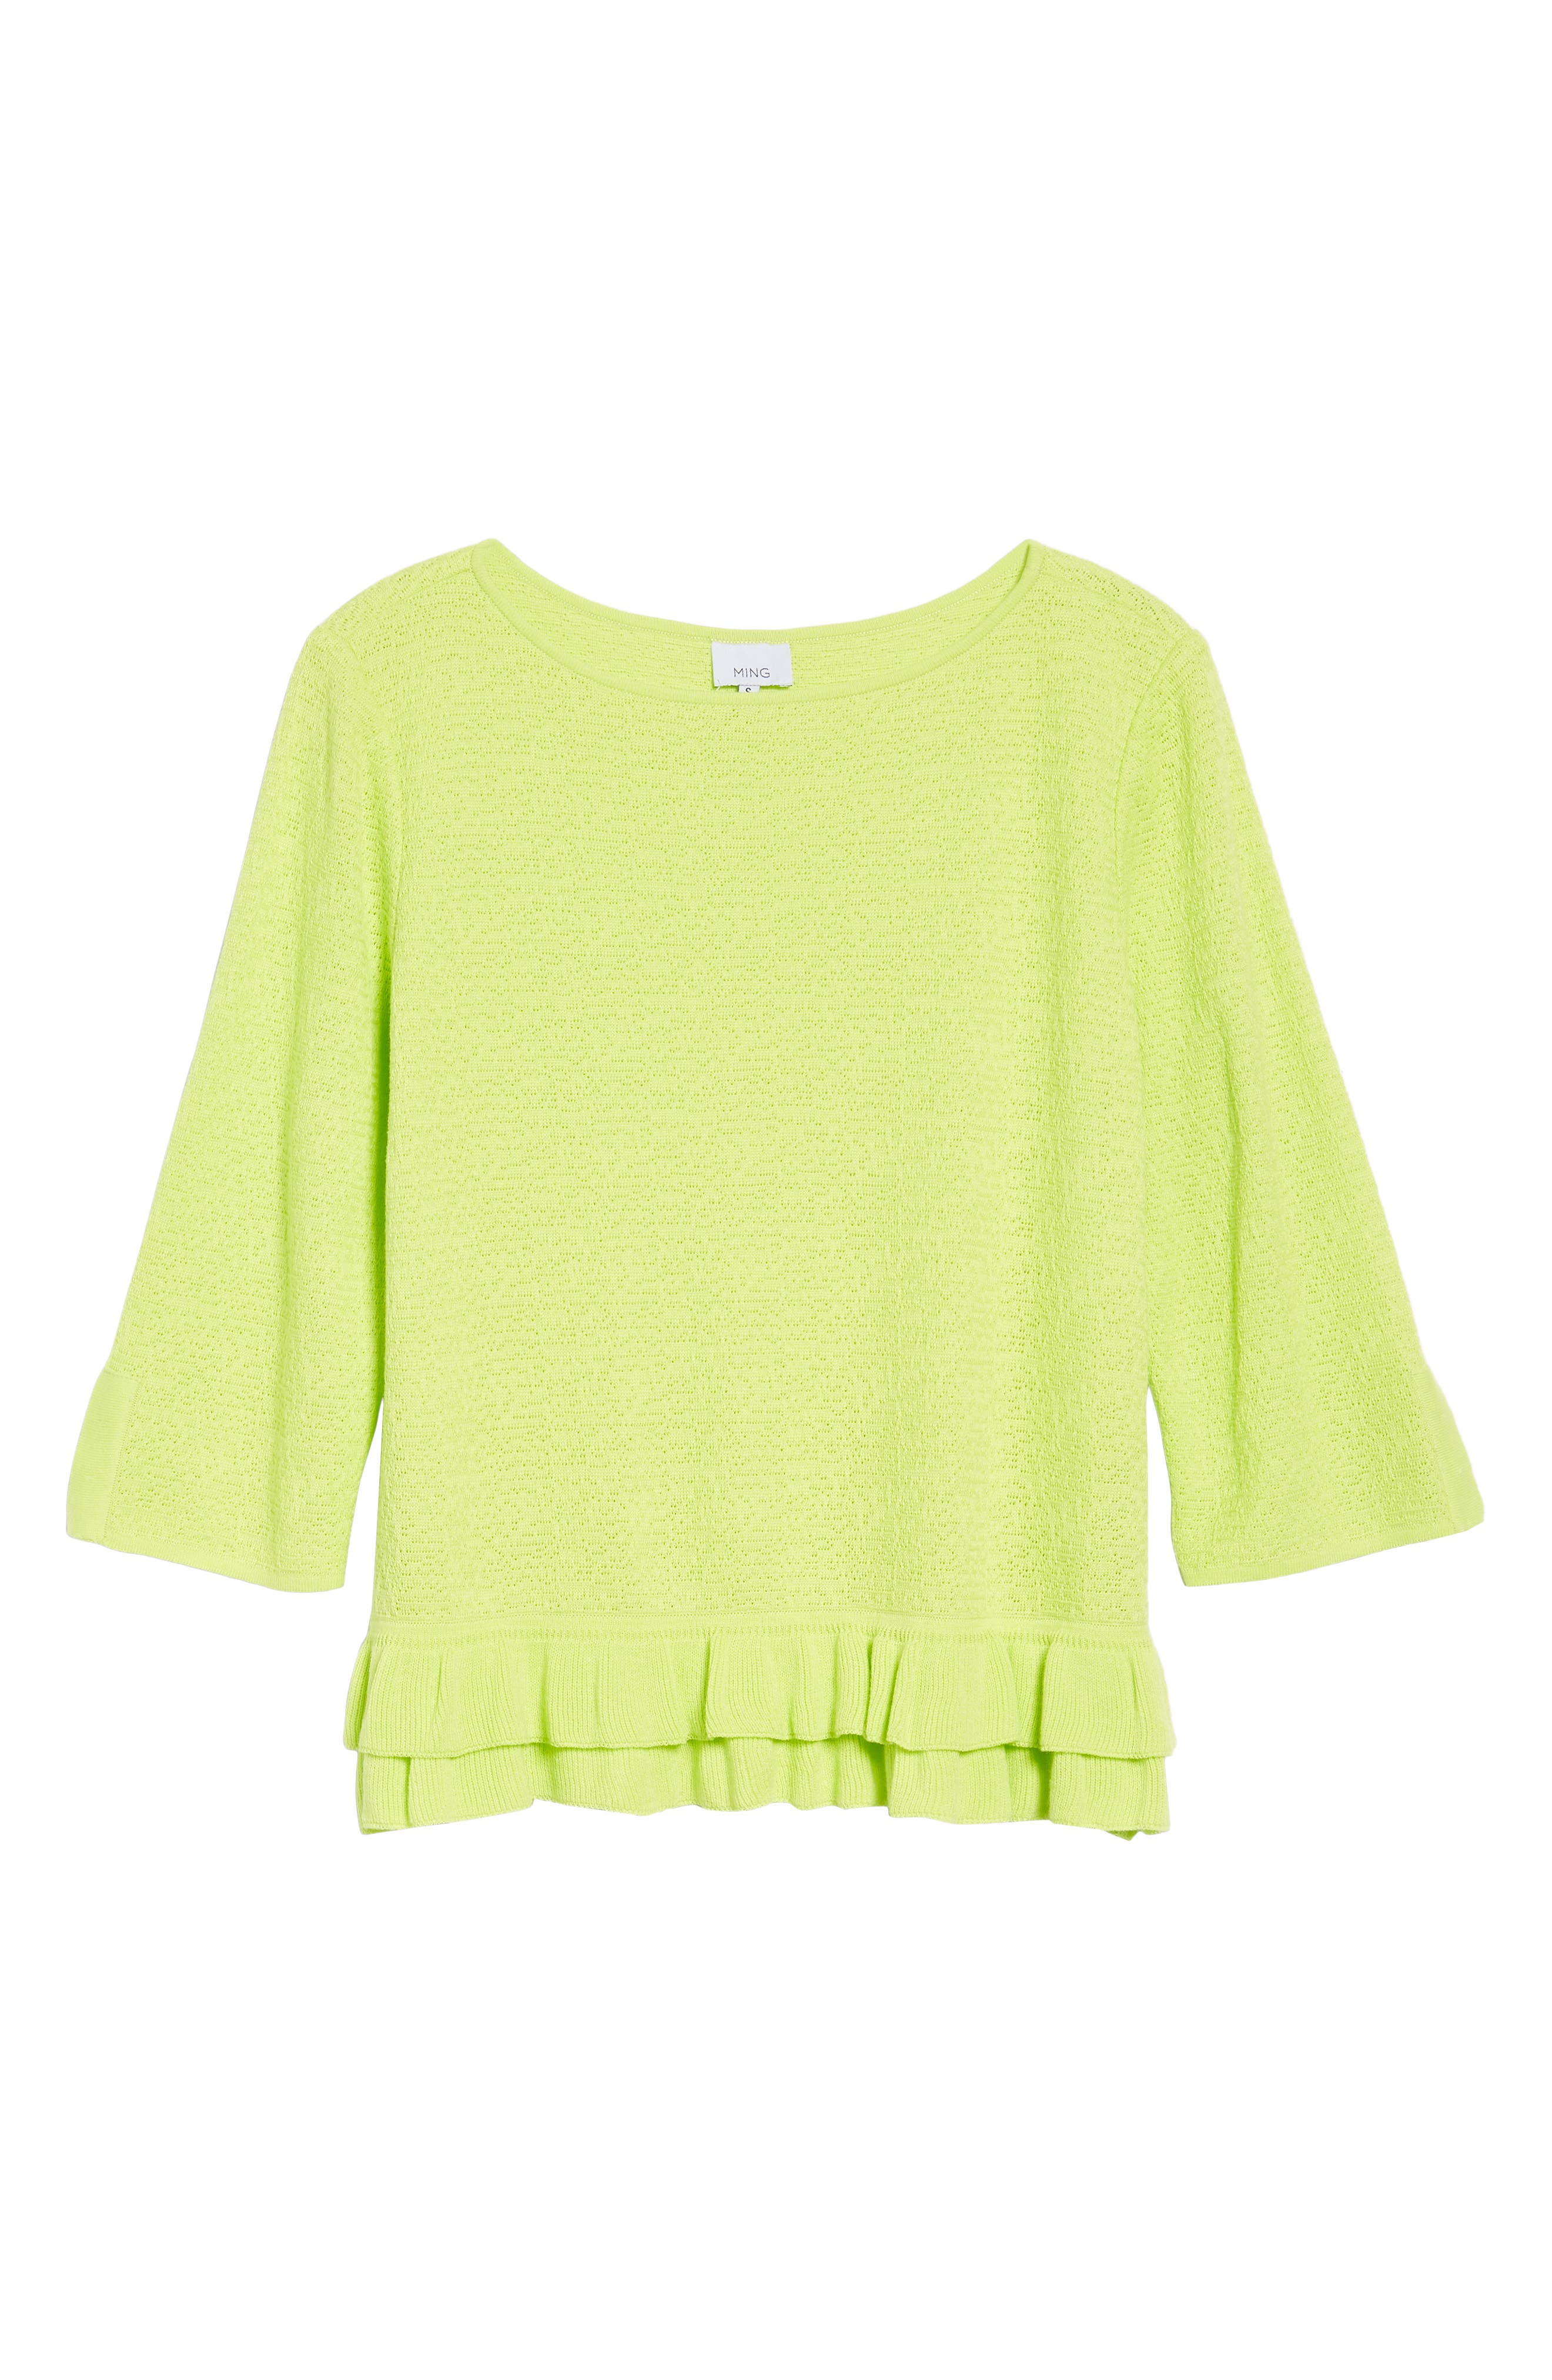 Button Detail Ruffle Sweater,                             Alternate thumbnail 6, color,                             Pear